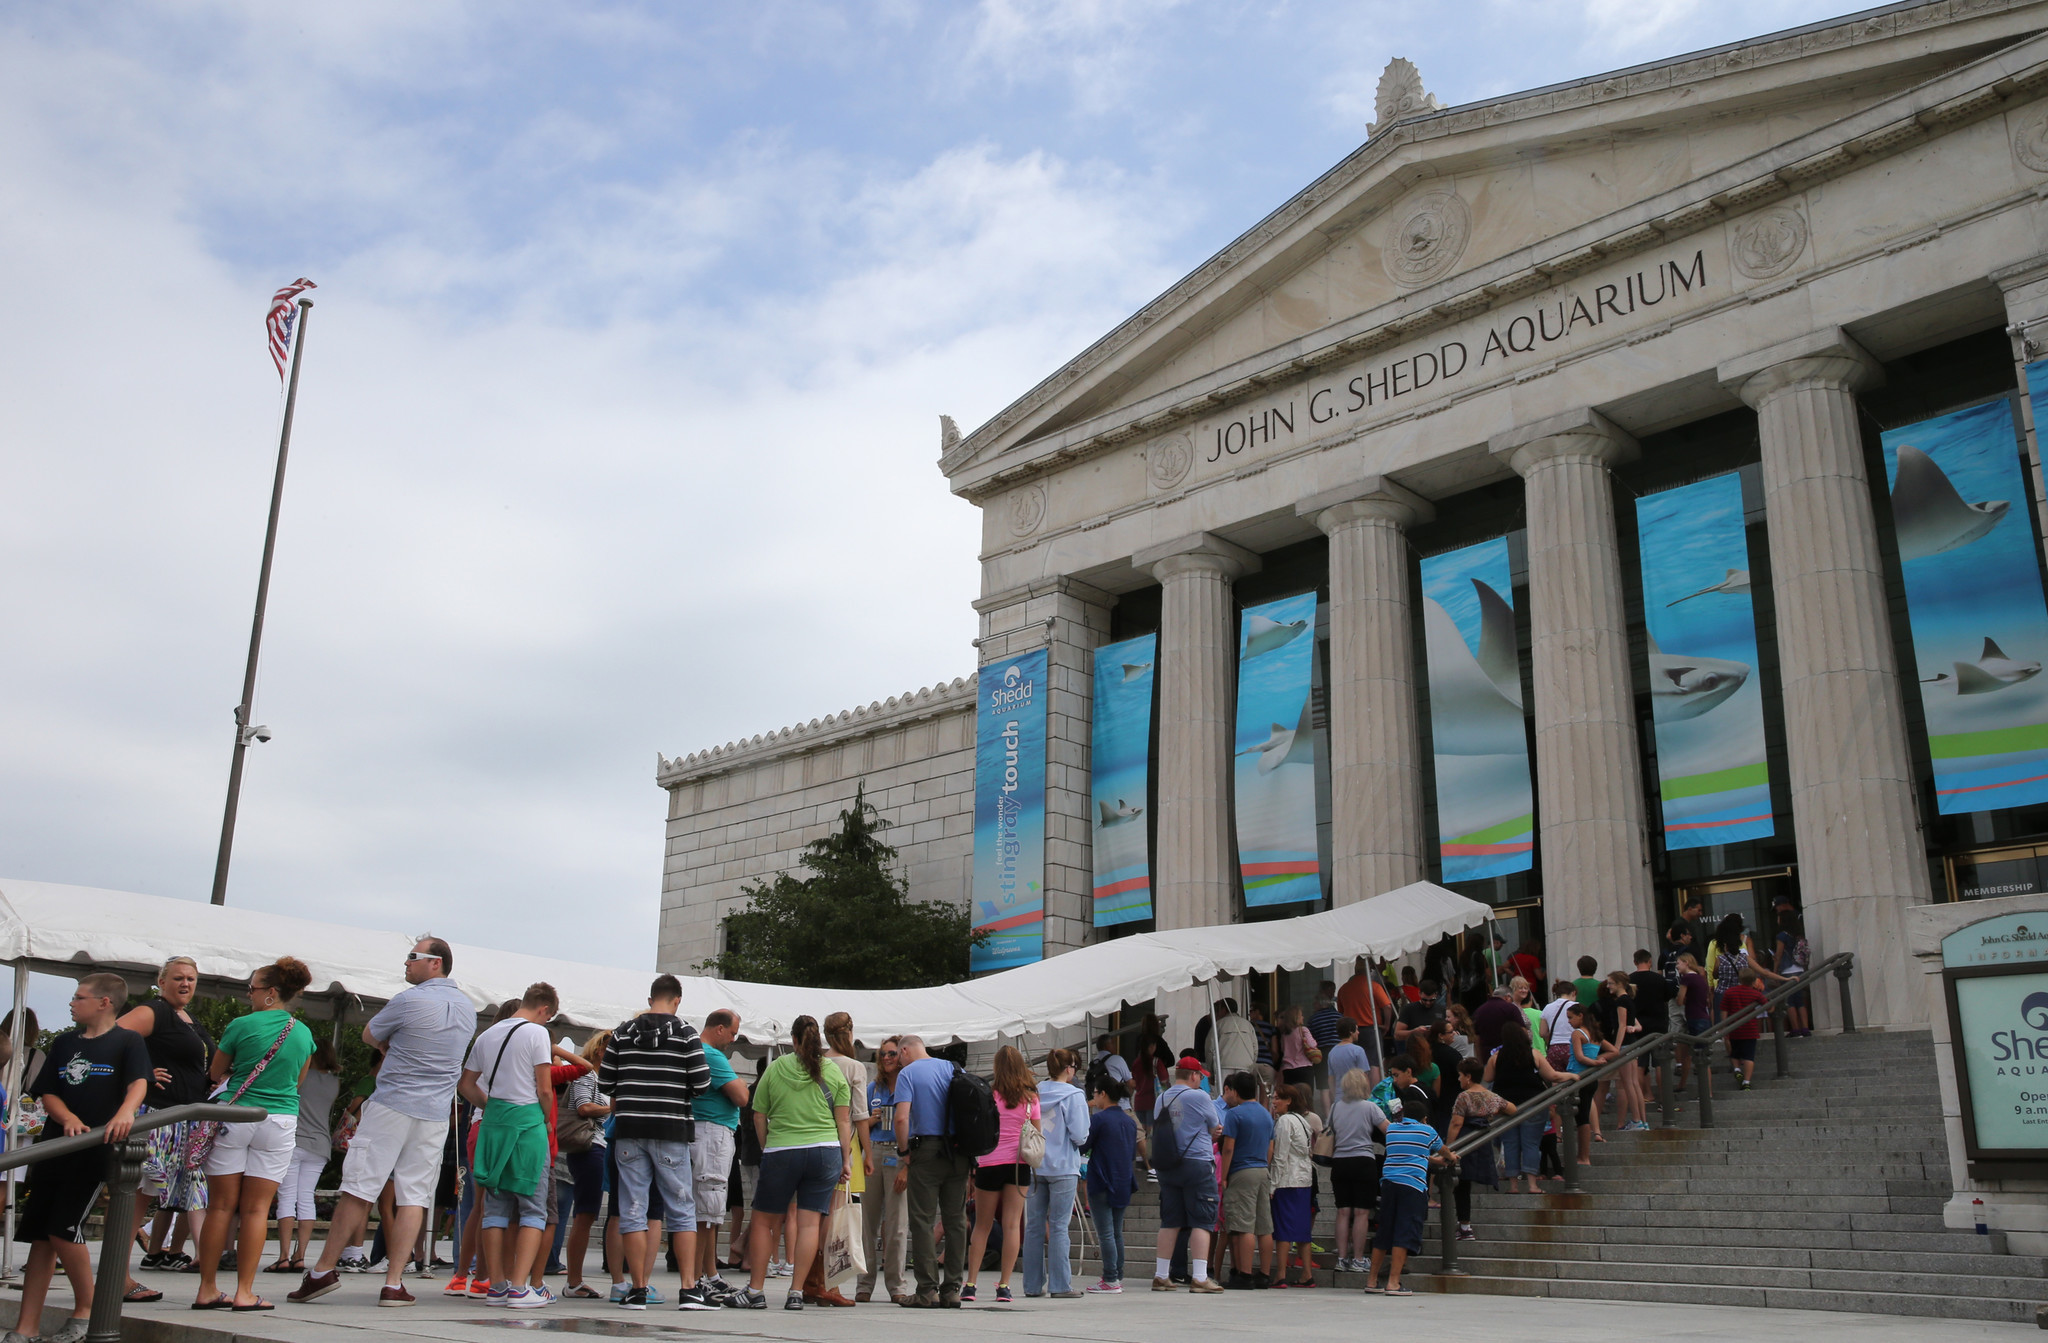 Shedd To Request First Price Hike In 17 Years Seeking